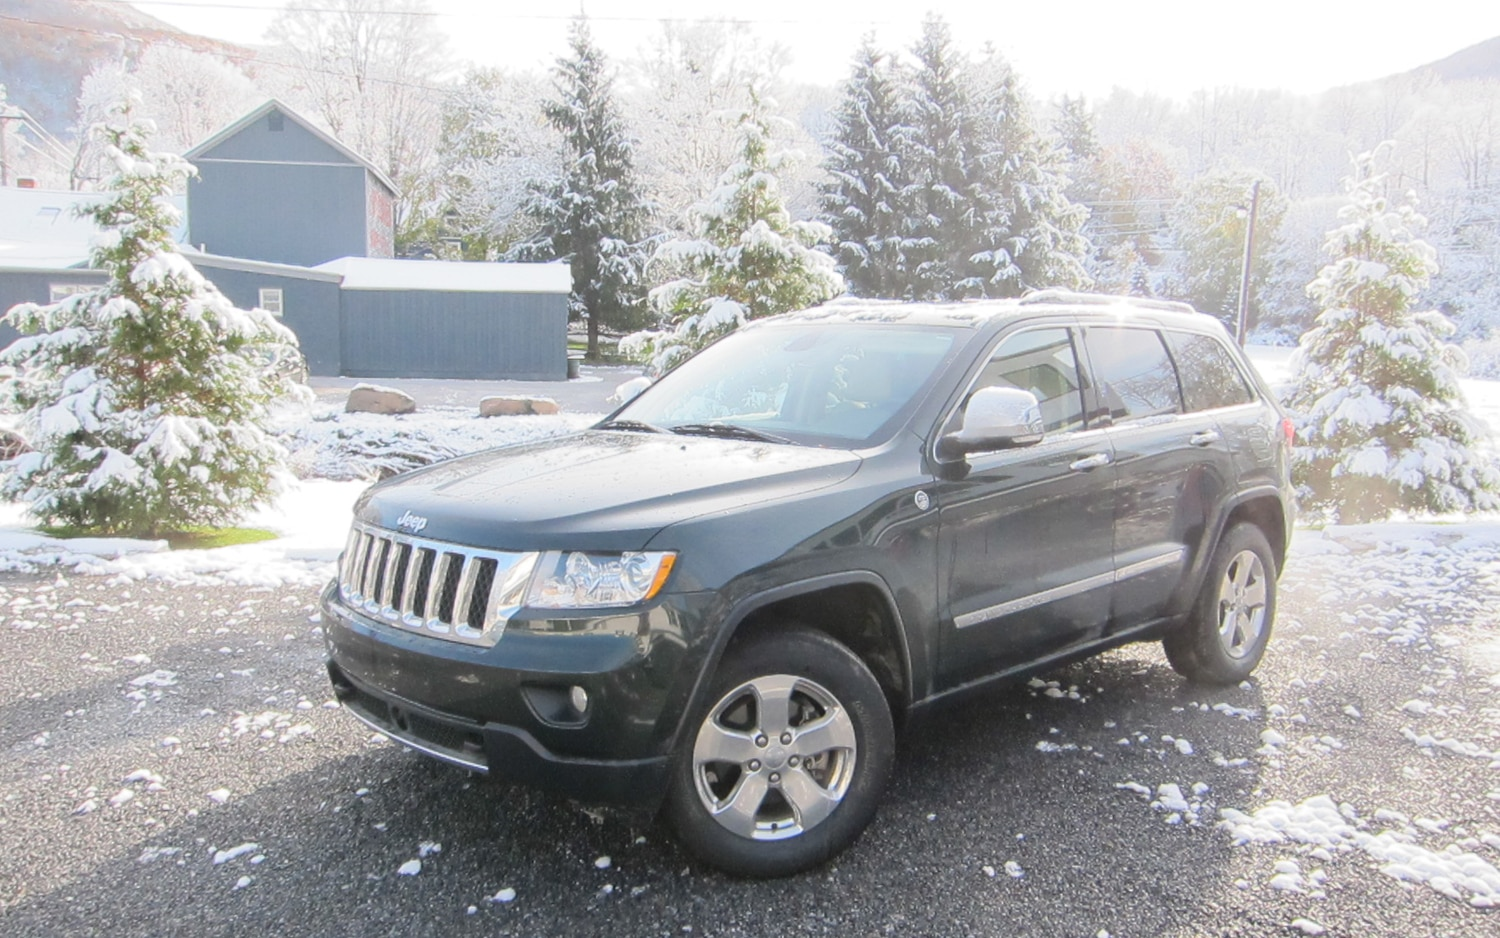 2011 Jeep Grand Cherokee Four Seasons Wrap Up Automobile Magazine Leveling Kit Show More